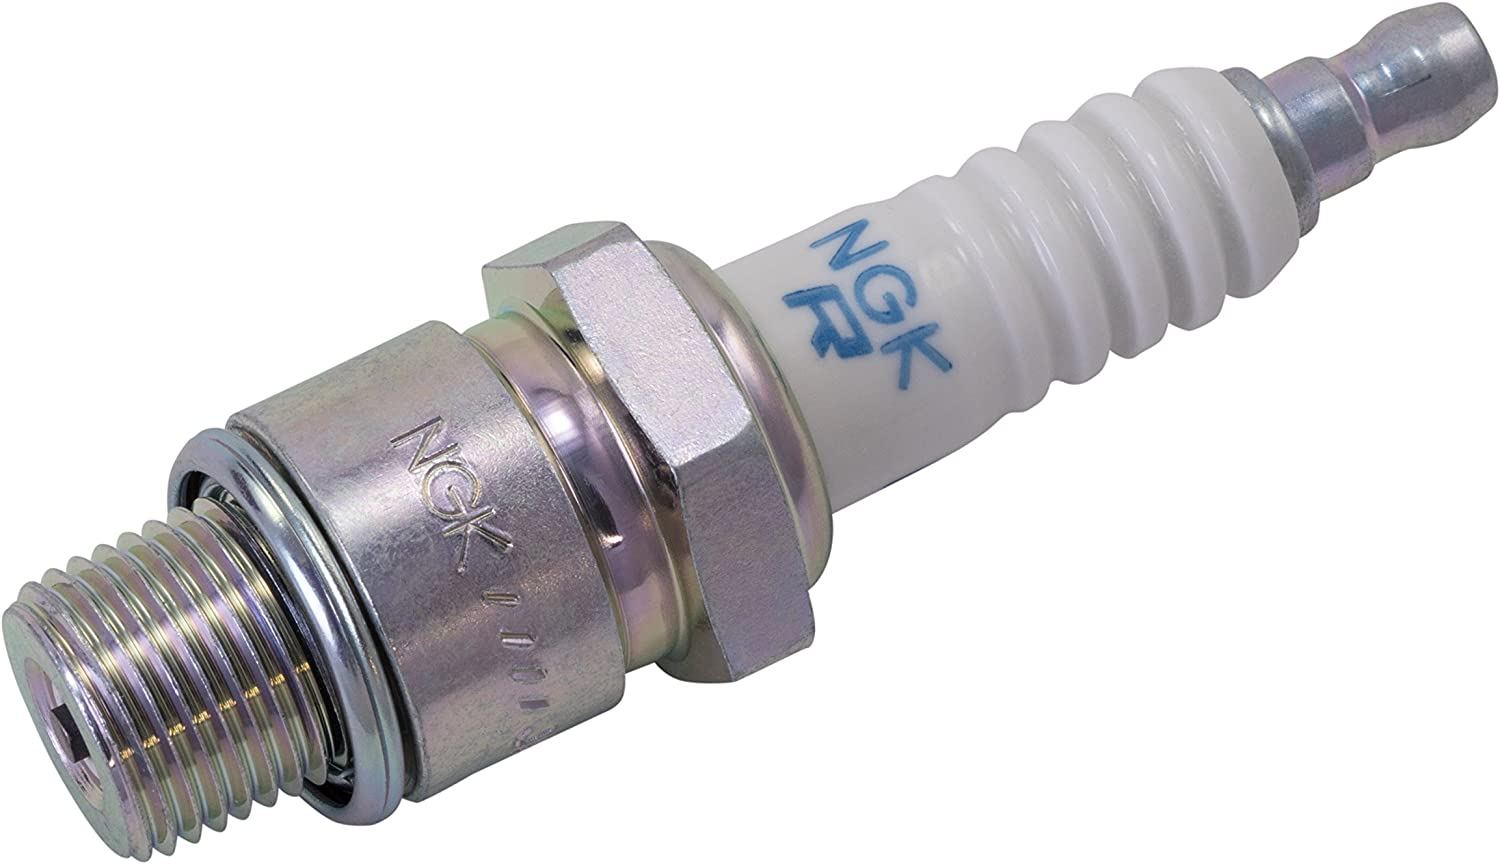 Unspecified QuickSilver Unisexs Boat Spark Plugs